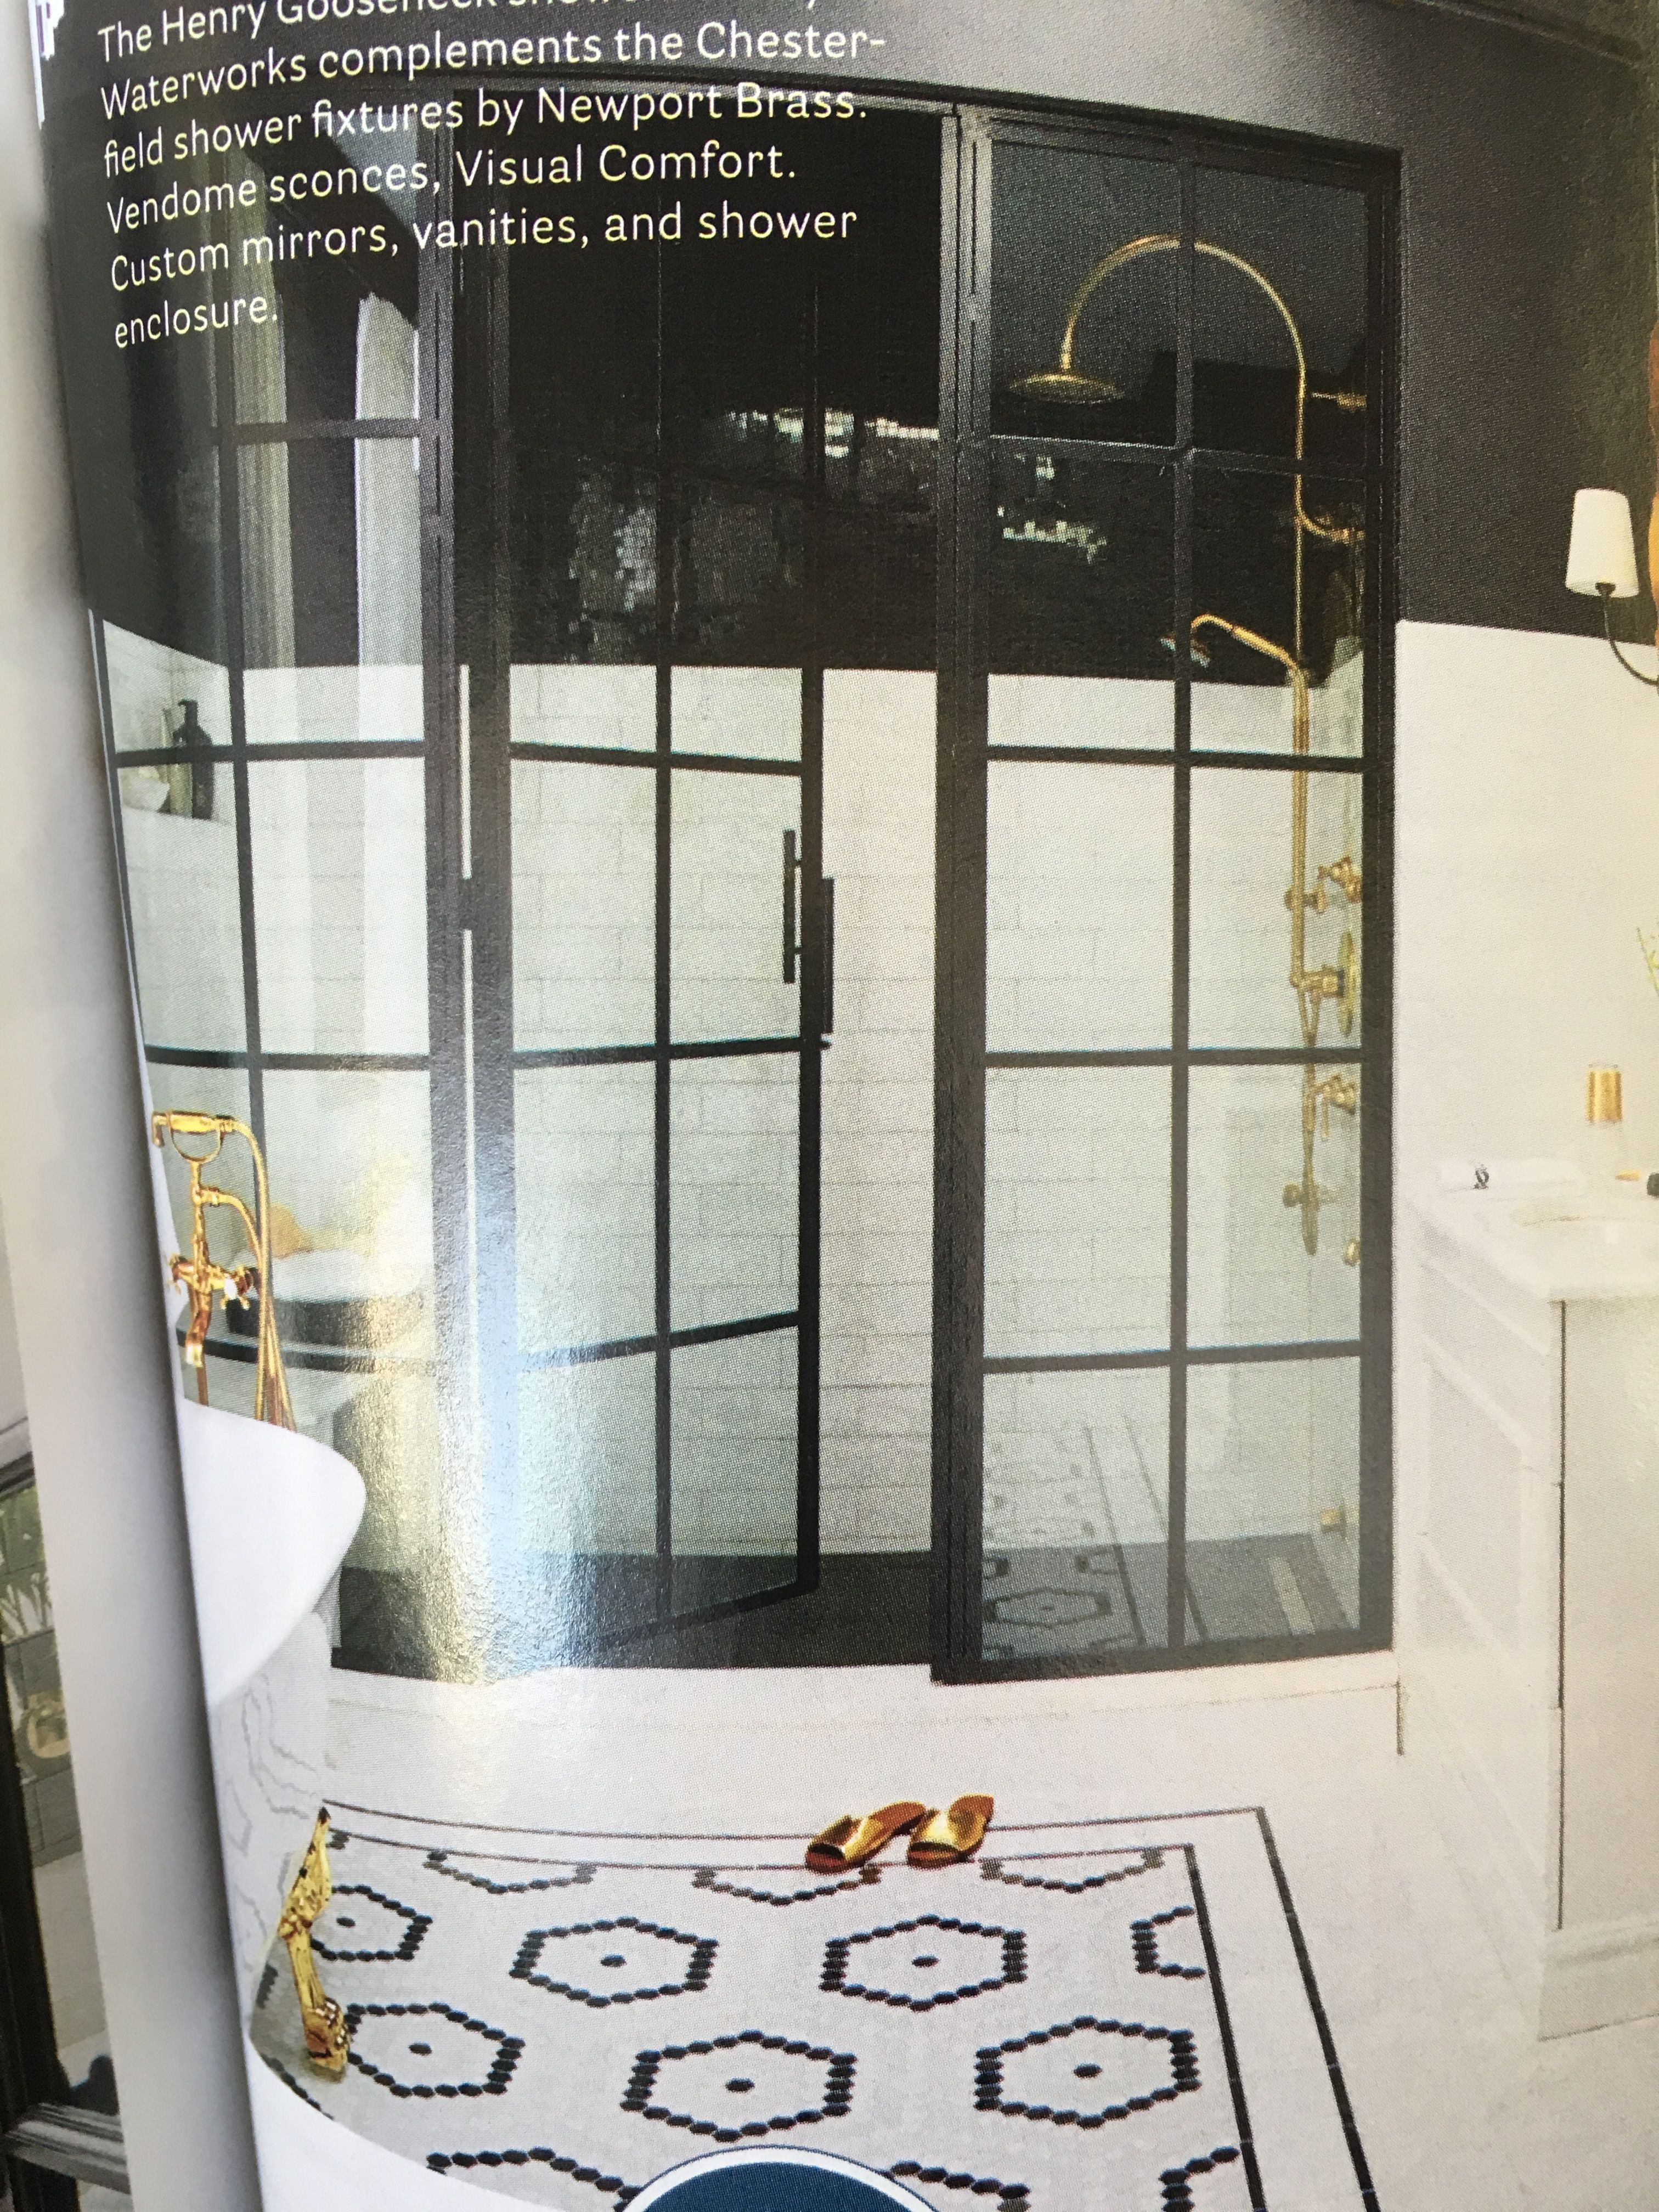 Pin by Sarah Rogers on New house Shower fixtures, Shower